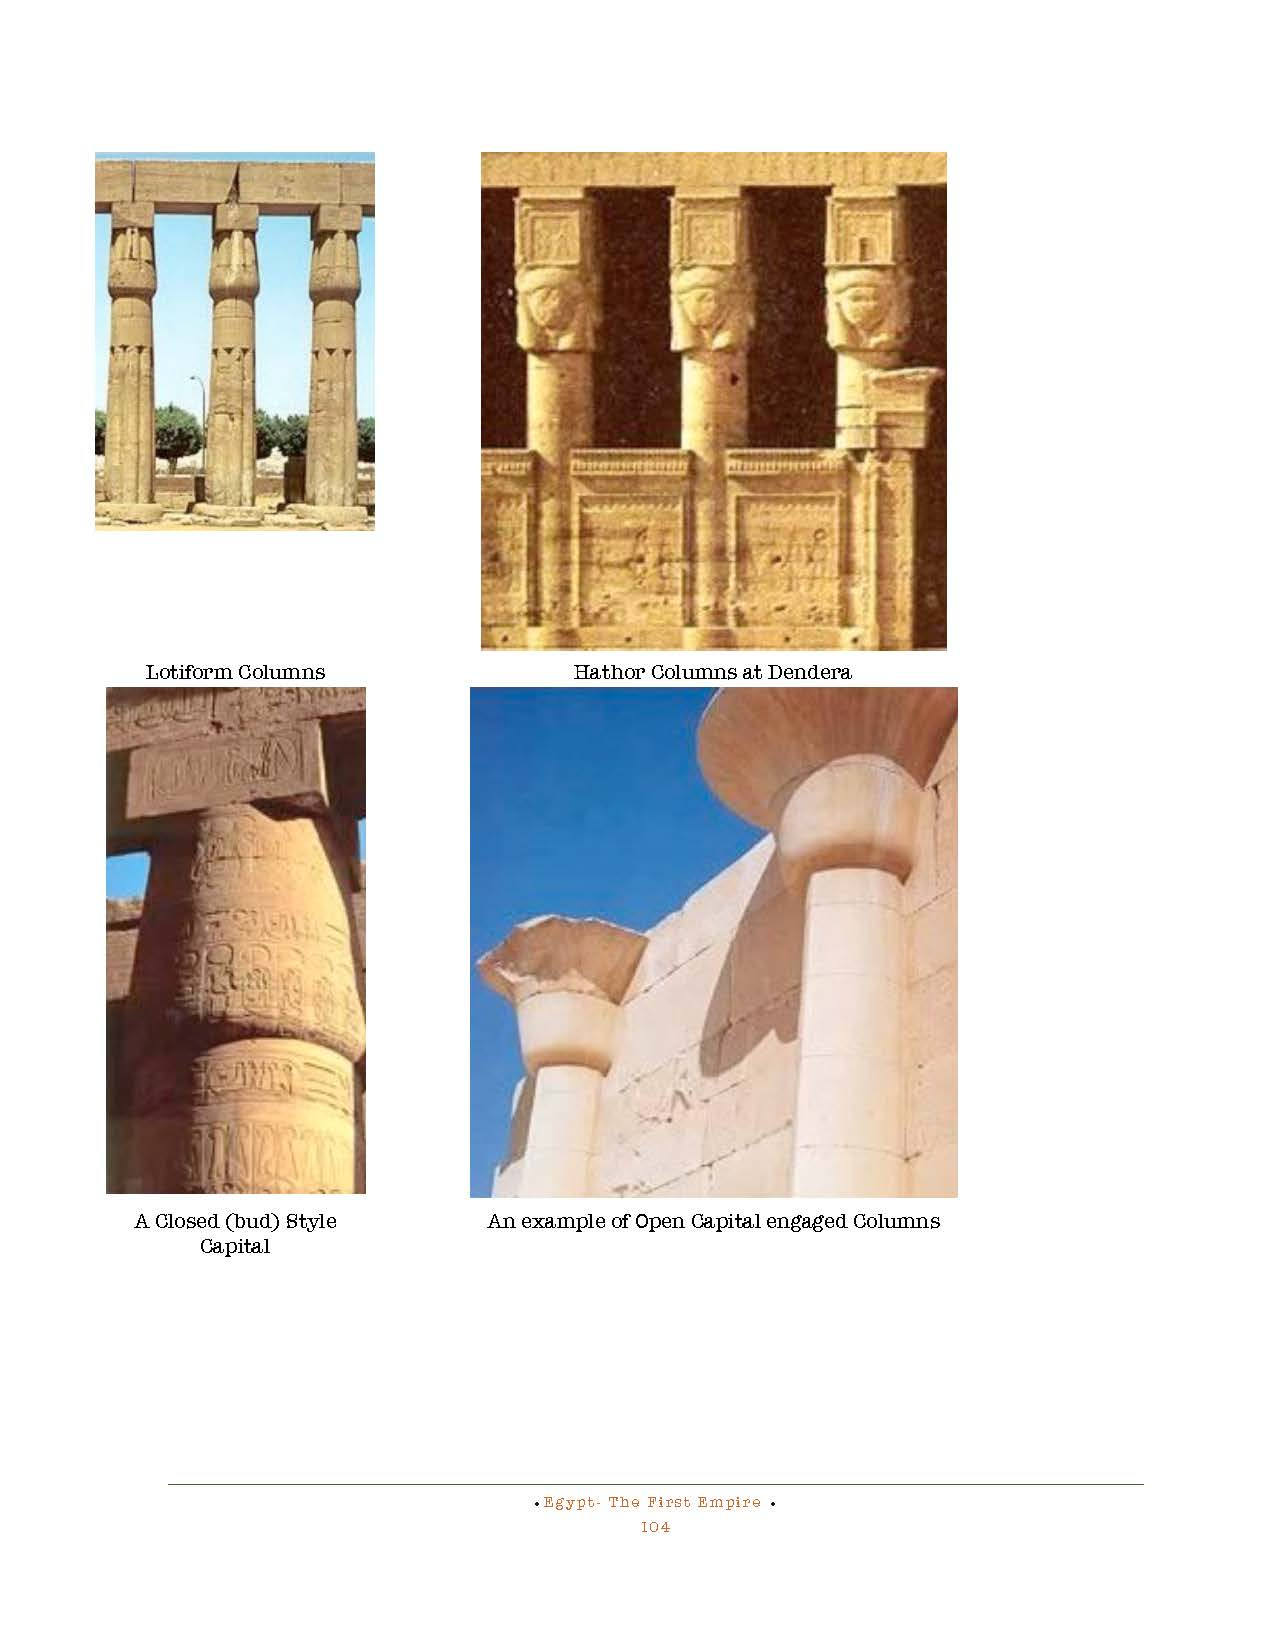 HOCE- Egypt  (First Empire) Notes_Page_104.jpg